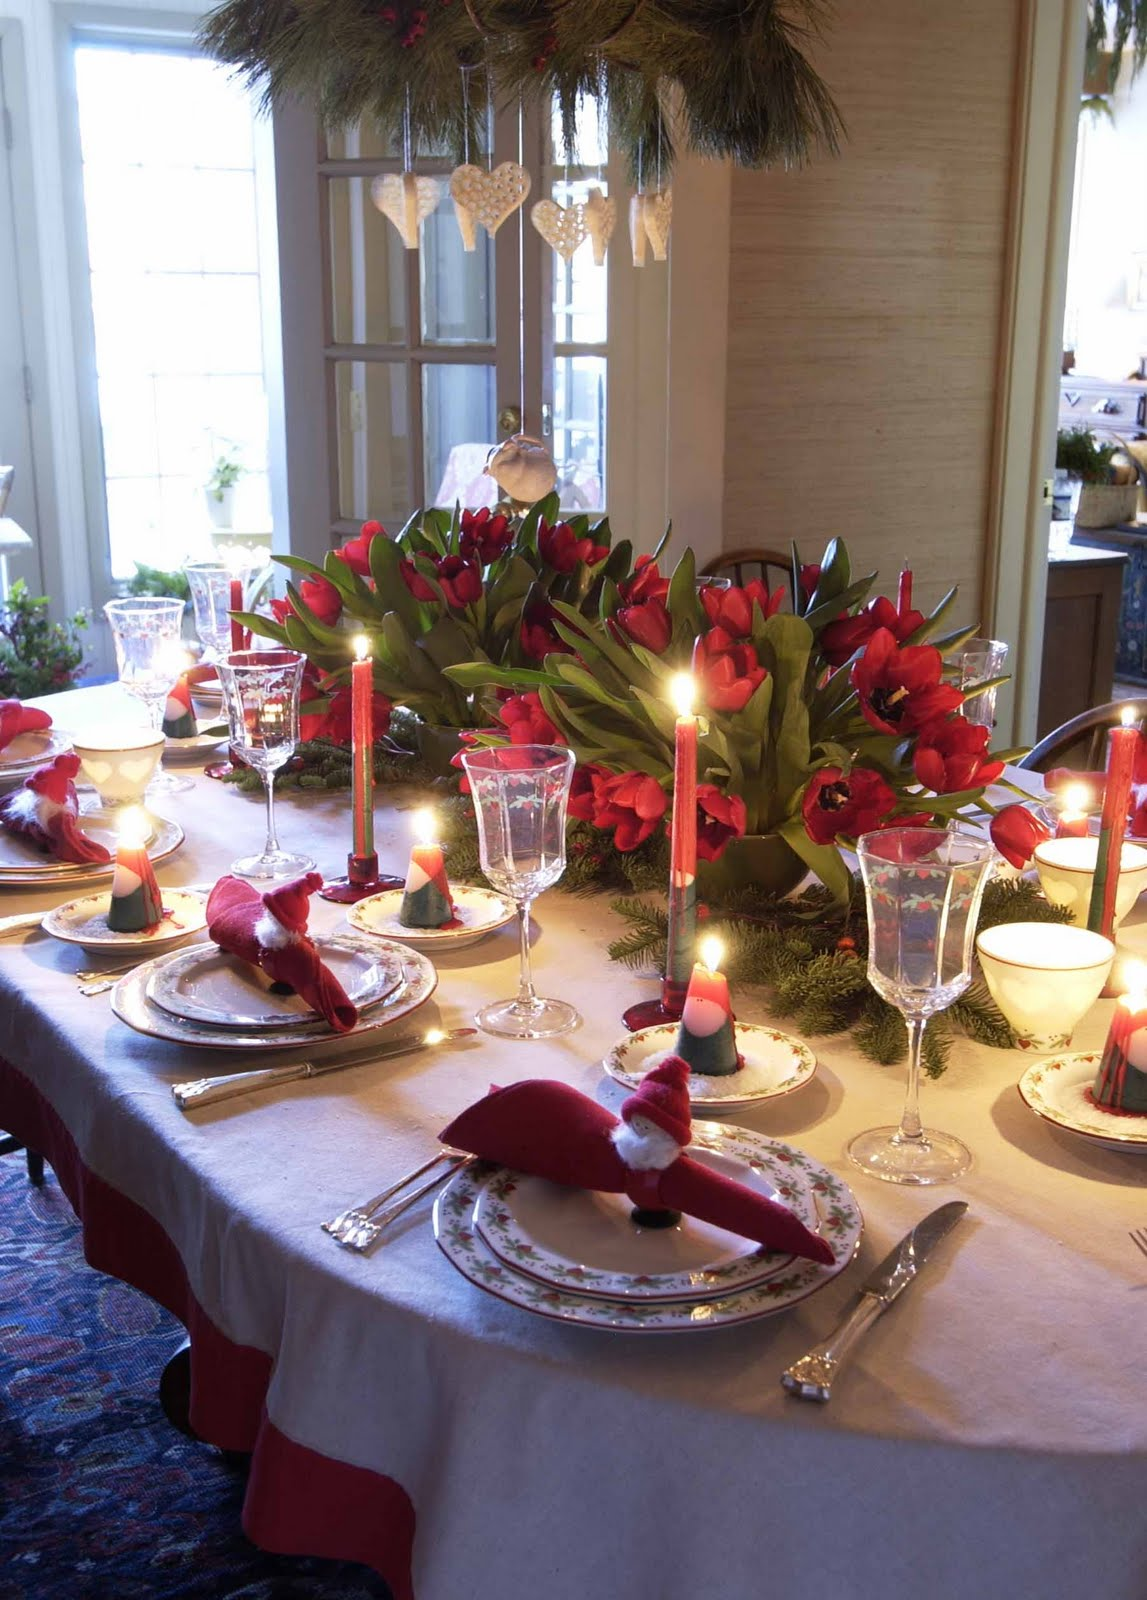 Admirable 35 Christmas Table Decoration Ideas For 2017 Wow Decor Interior Design Ideas Gentotryabchikinfo